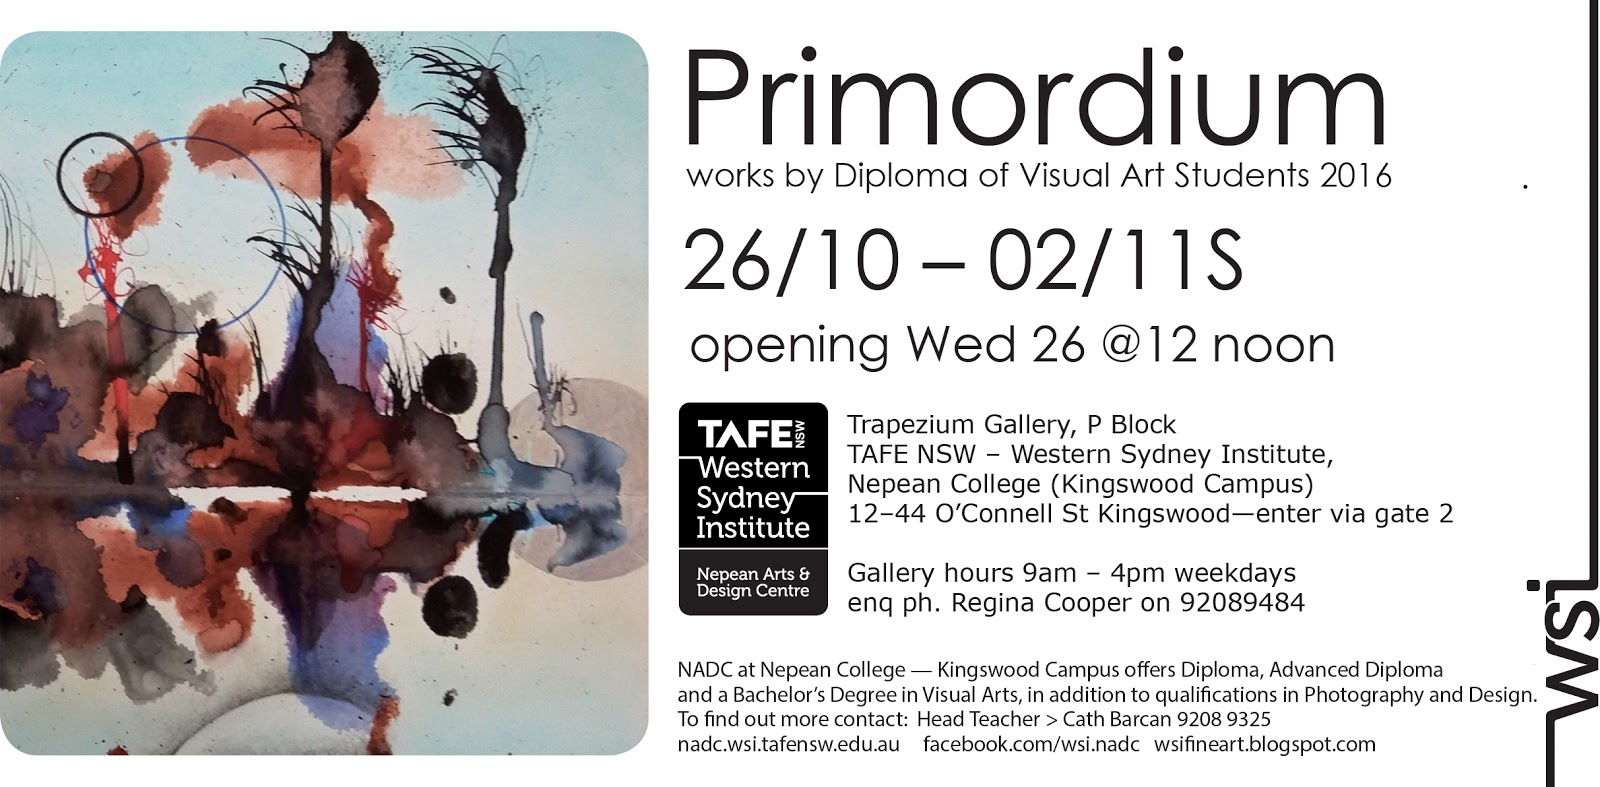 fine art at nepean arts and design centre primordium works by diploma of visual arts students 2016